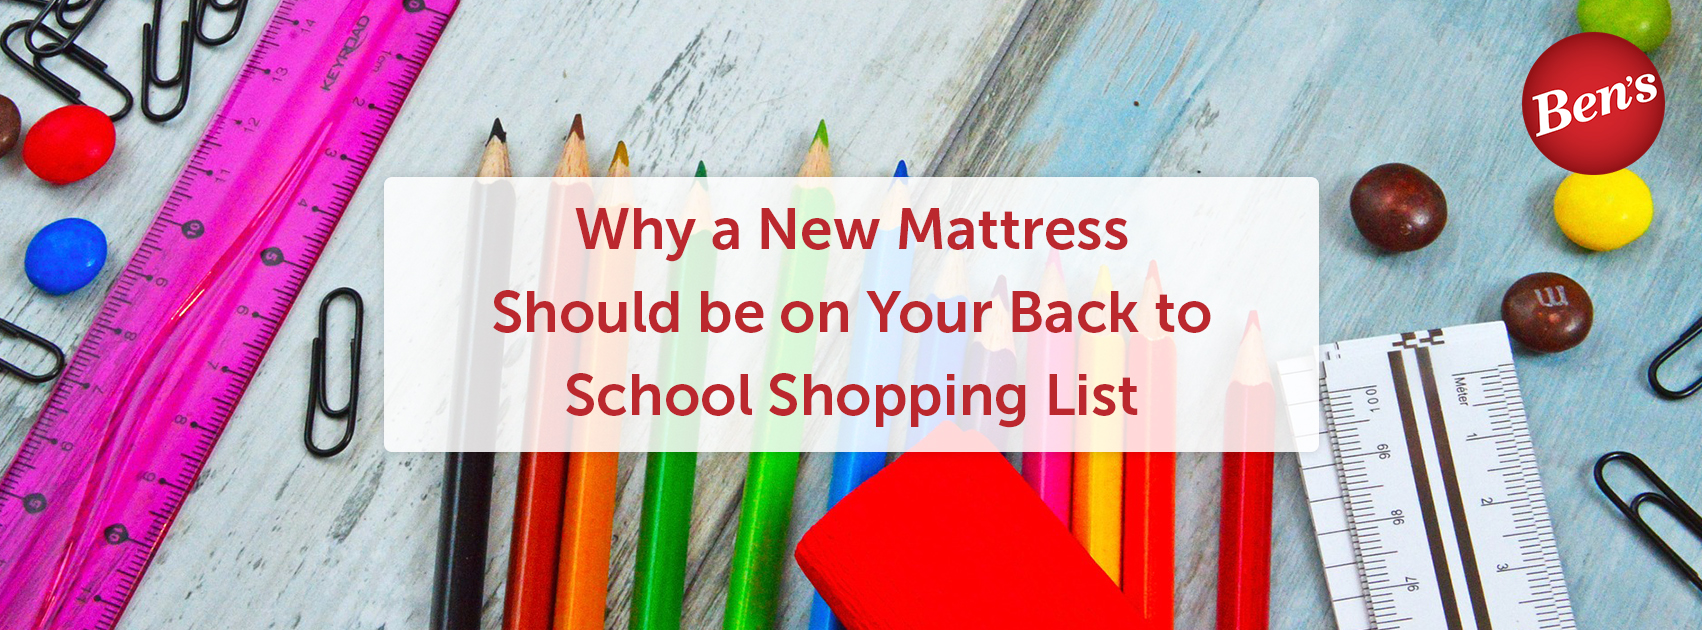 Why a New Mattress Should Be on Your Back to School Shopping List